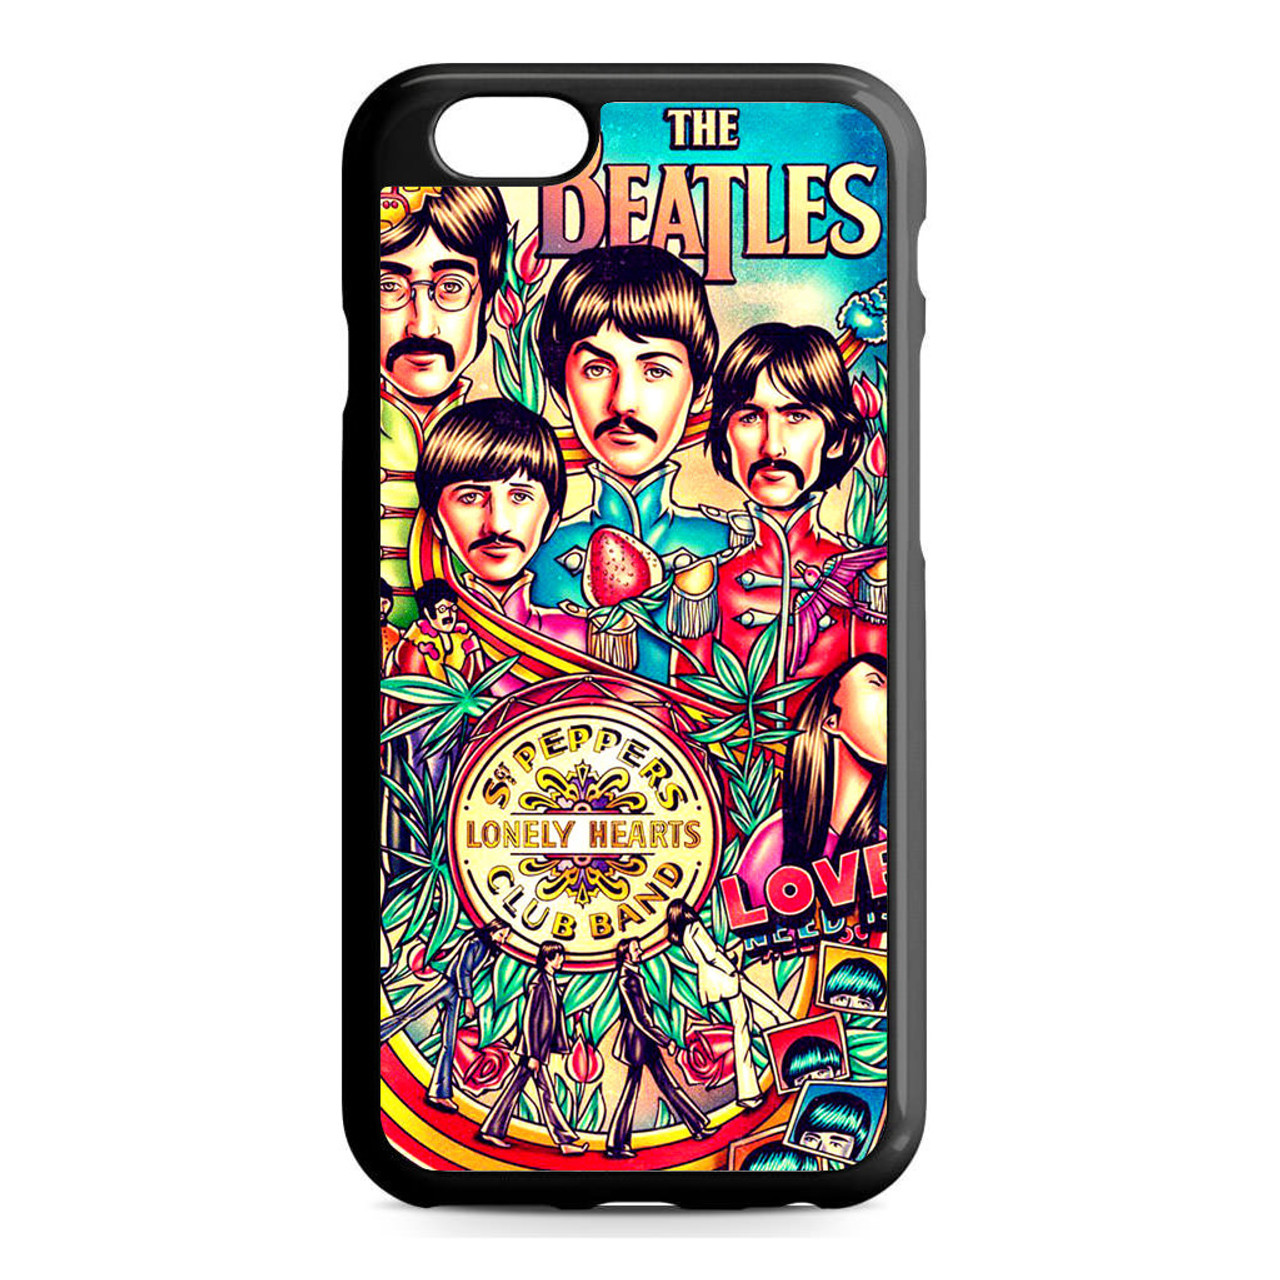 newest e42e2 890f9 The Beatles Vintage Poster iPhone 6/6S Case